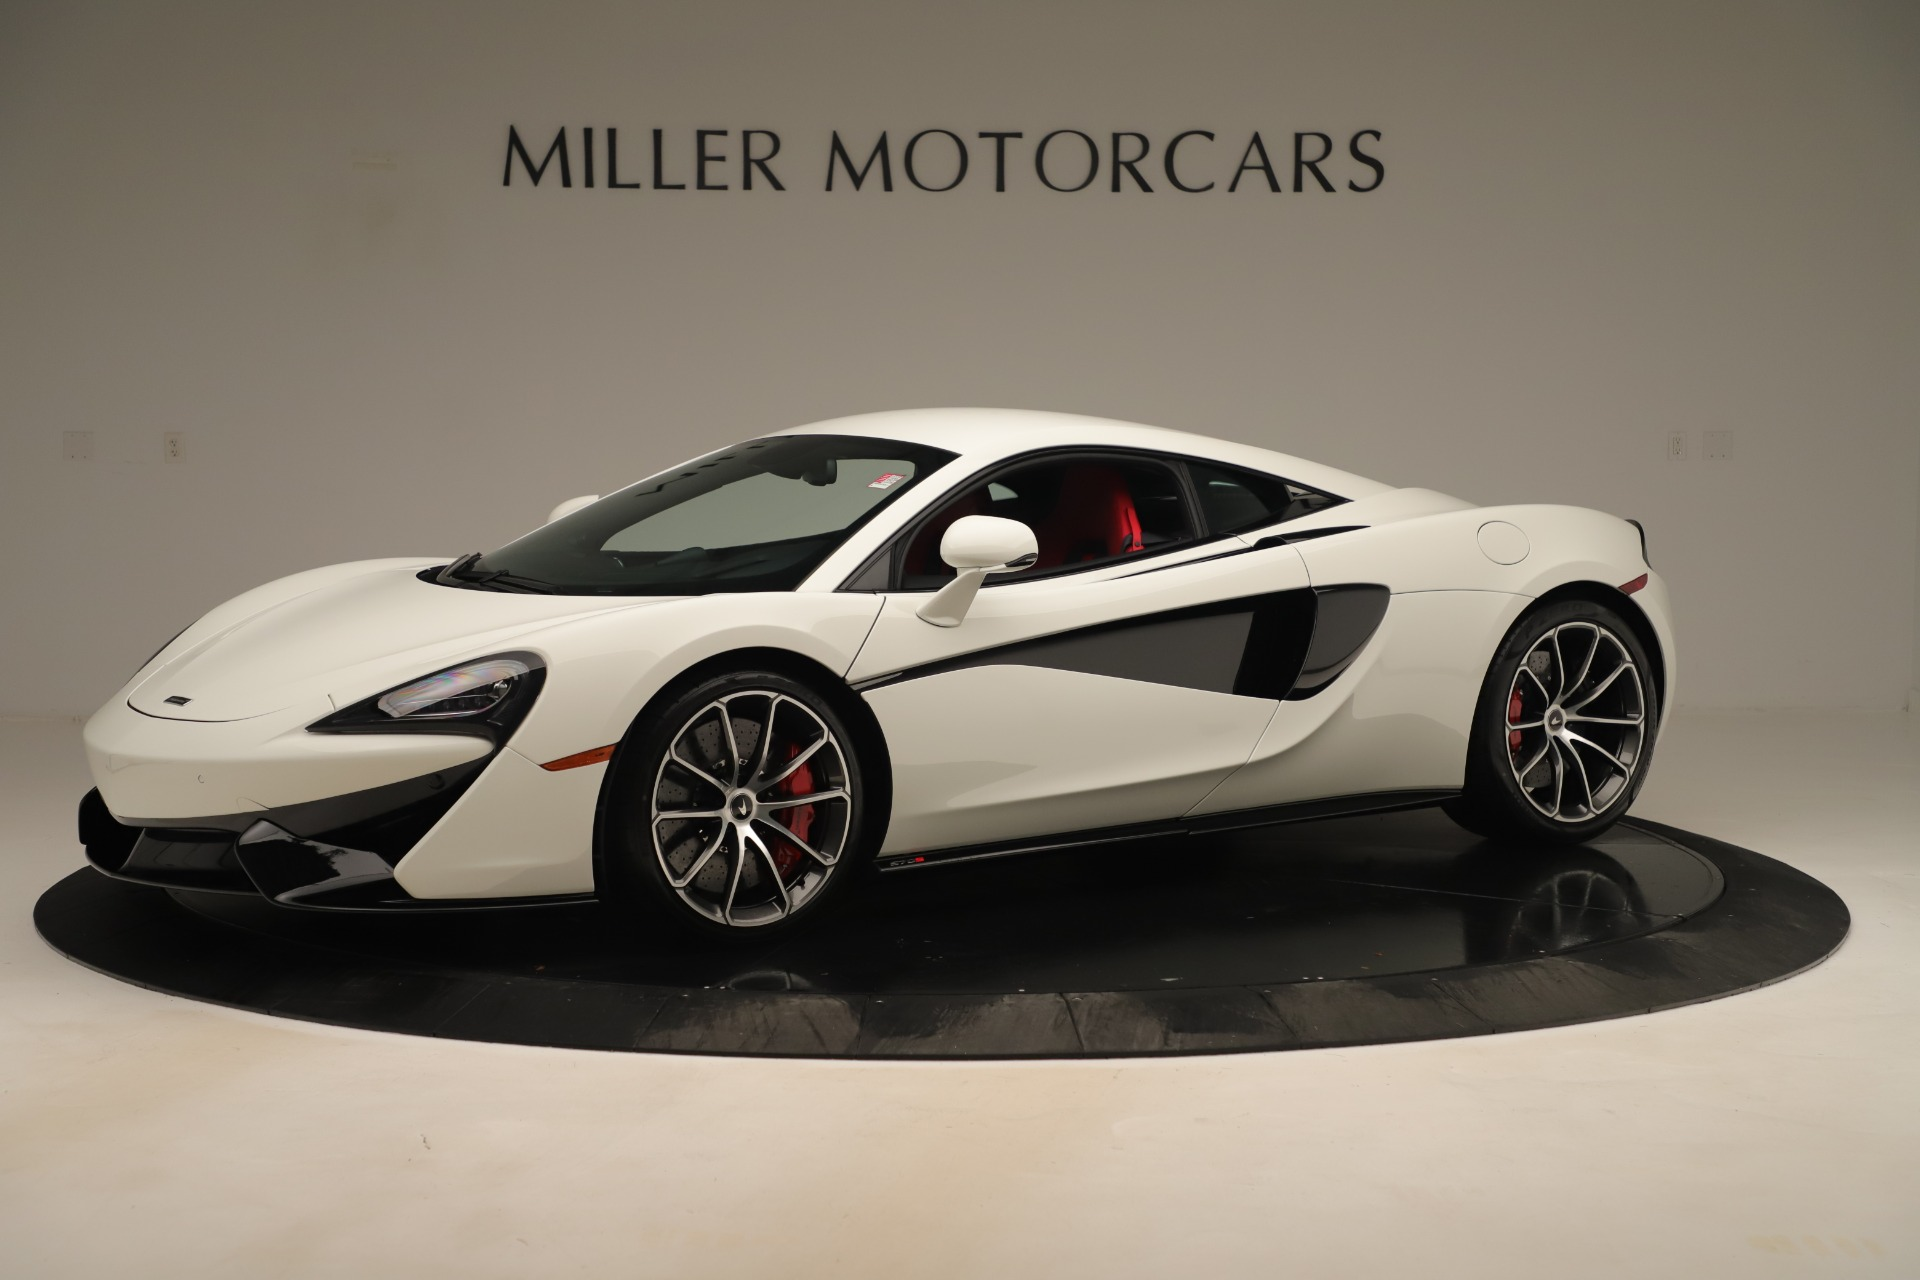 New 2020 McLaren 570S Coupe for sale $215,600 at Aston Martin of Greenwich in Greenwich CT 06830 1